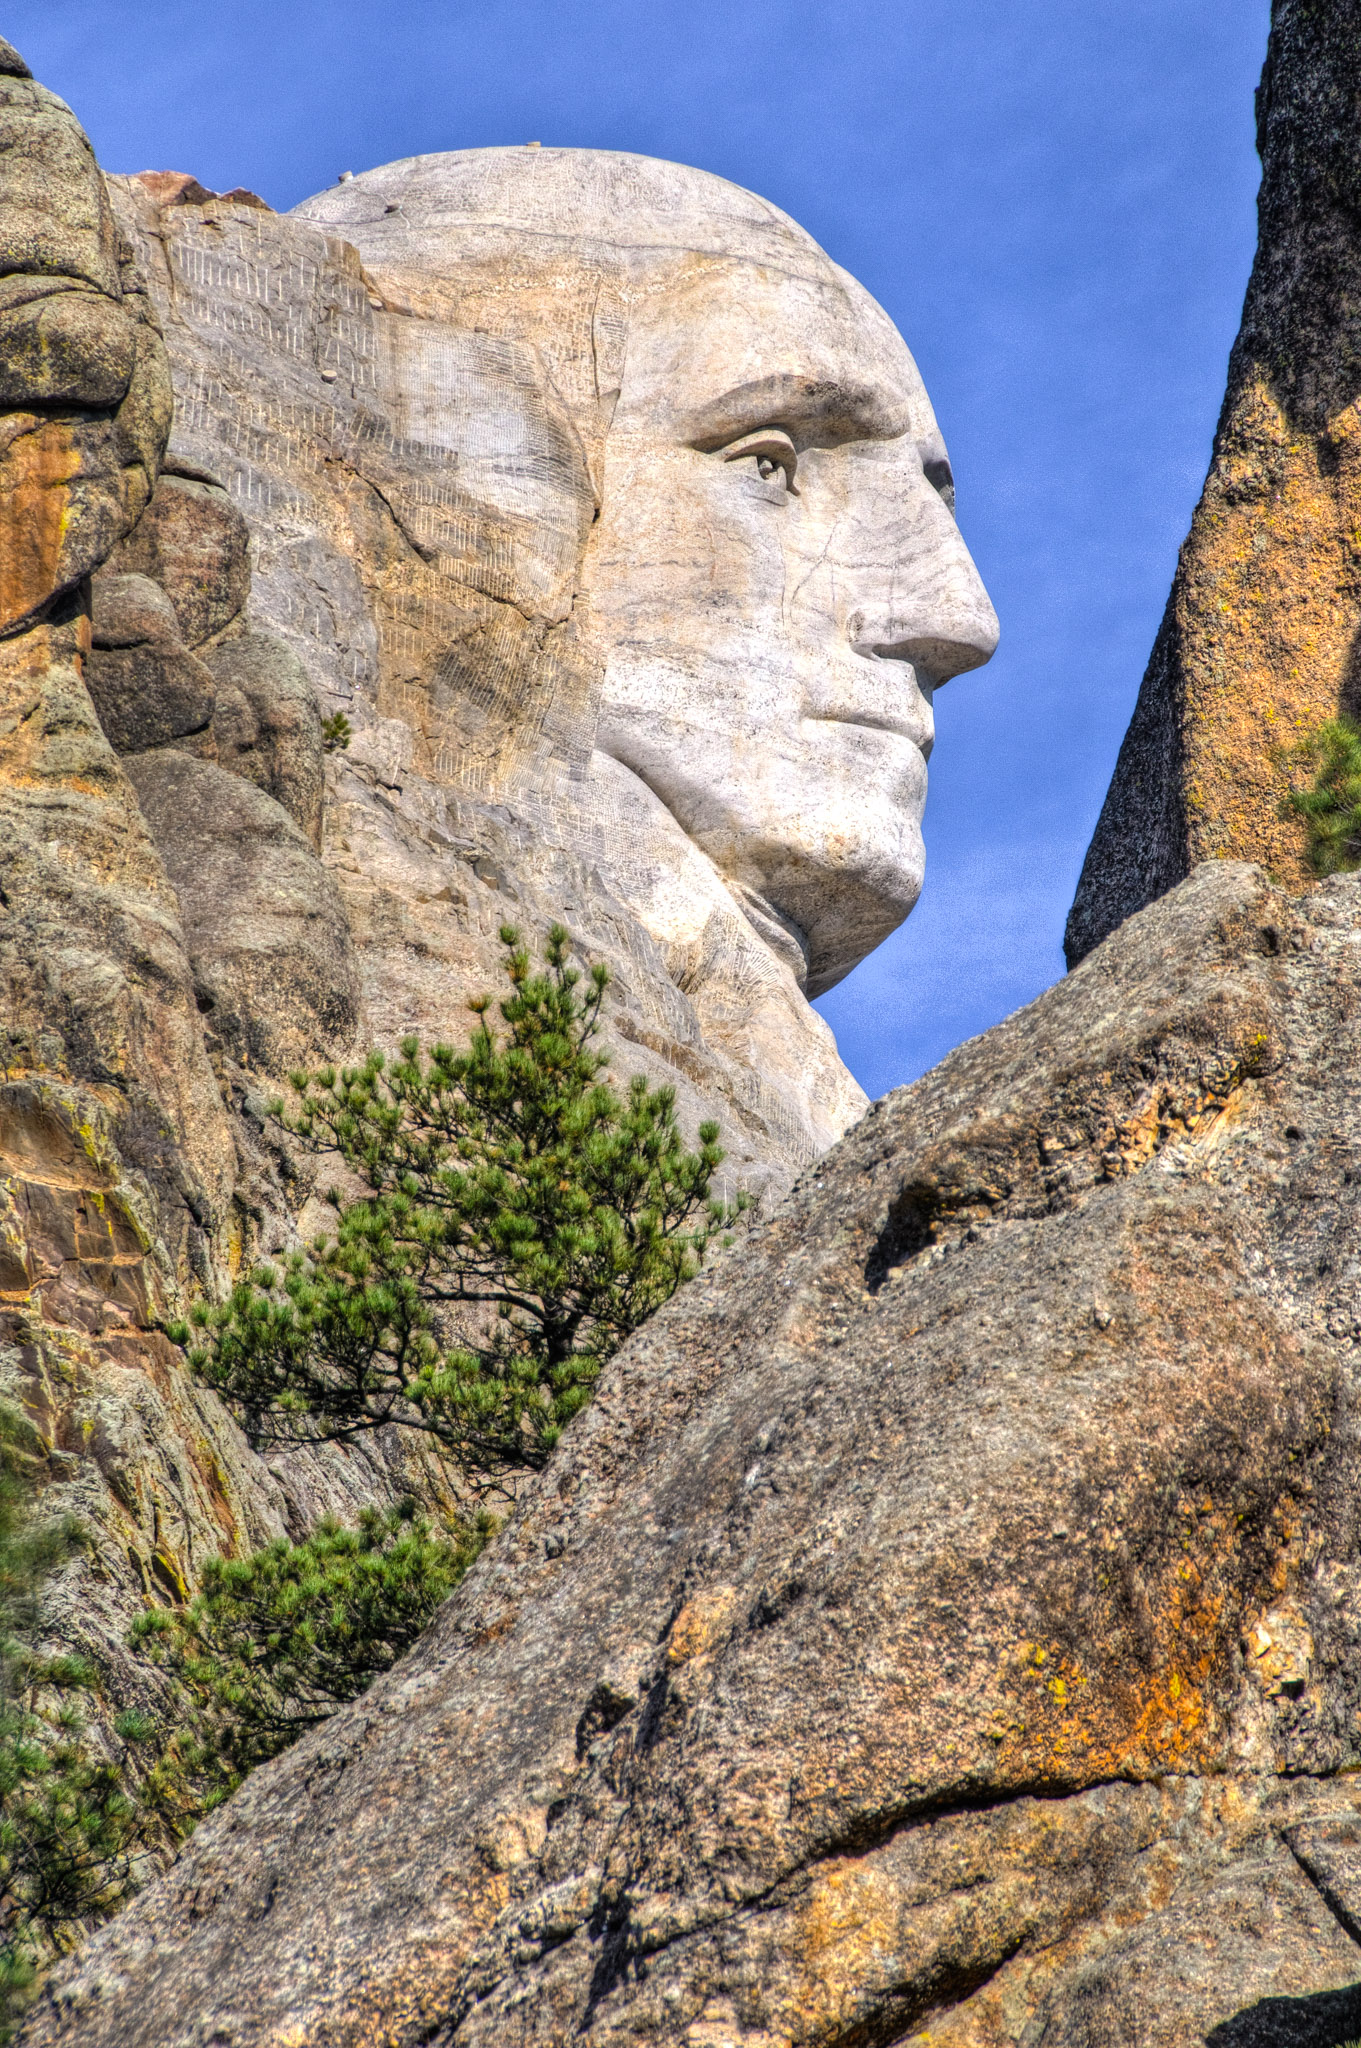 A close-up of the profile of President George Washington carved into Mt. Rushmore.